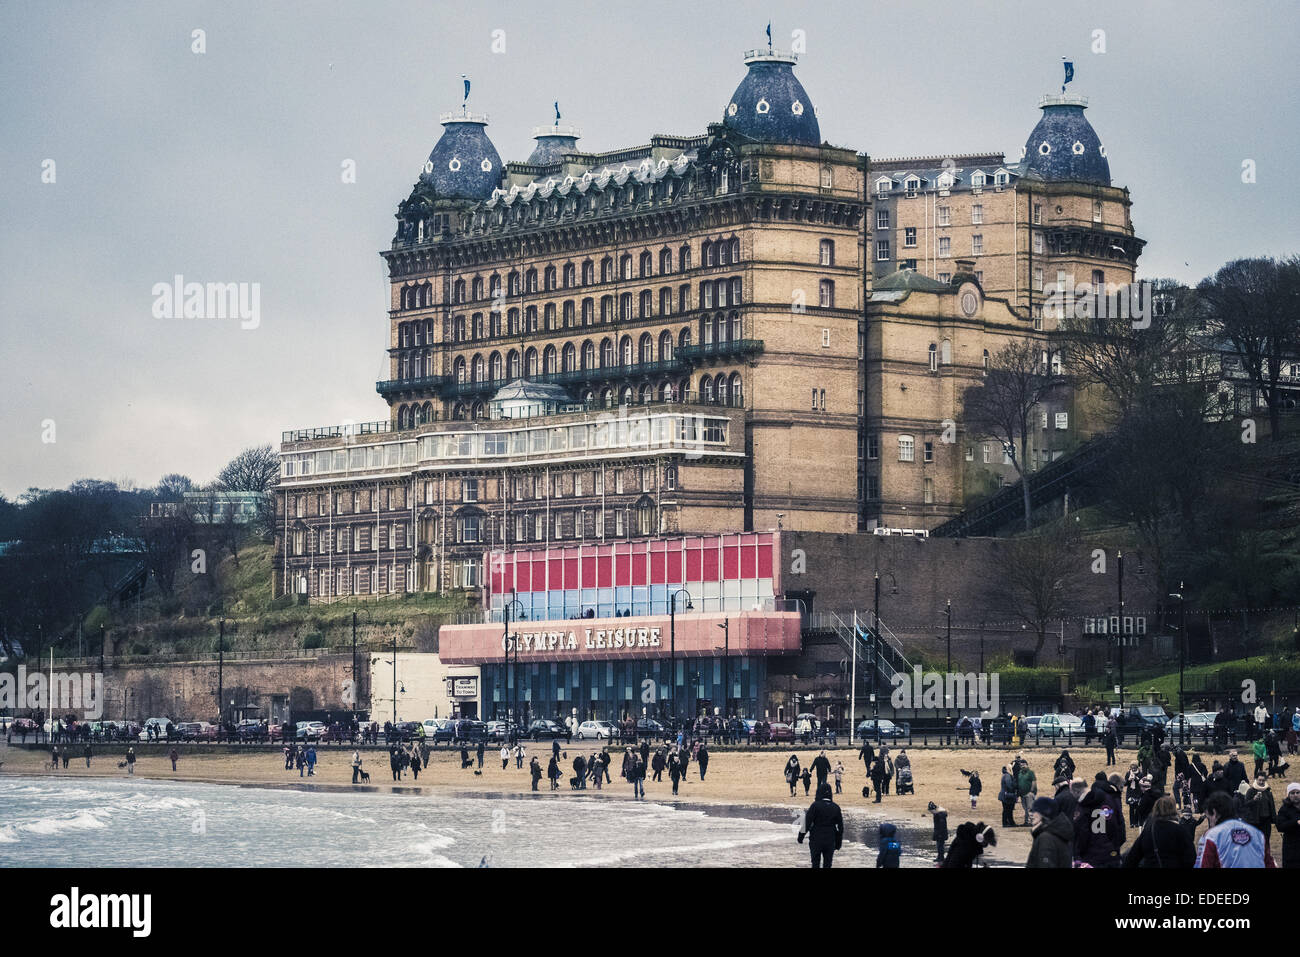 Grand Hotel and Olympia Leisure Amusements, Scarborough, North Yorkshire, UK. - Stock Image